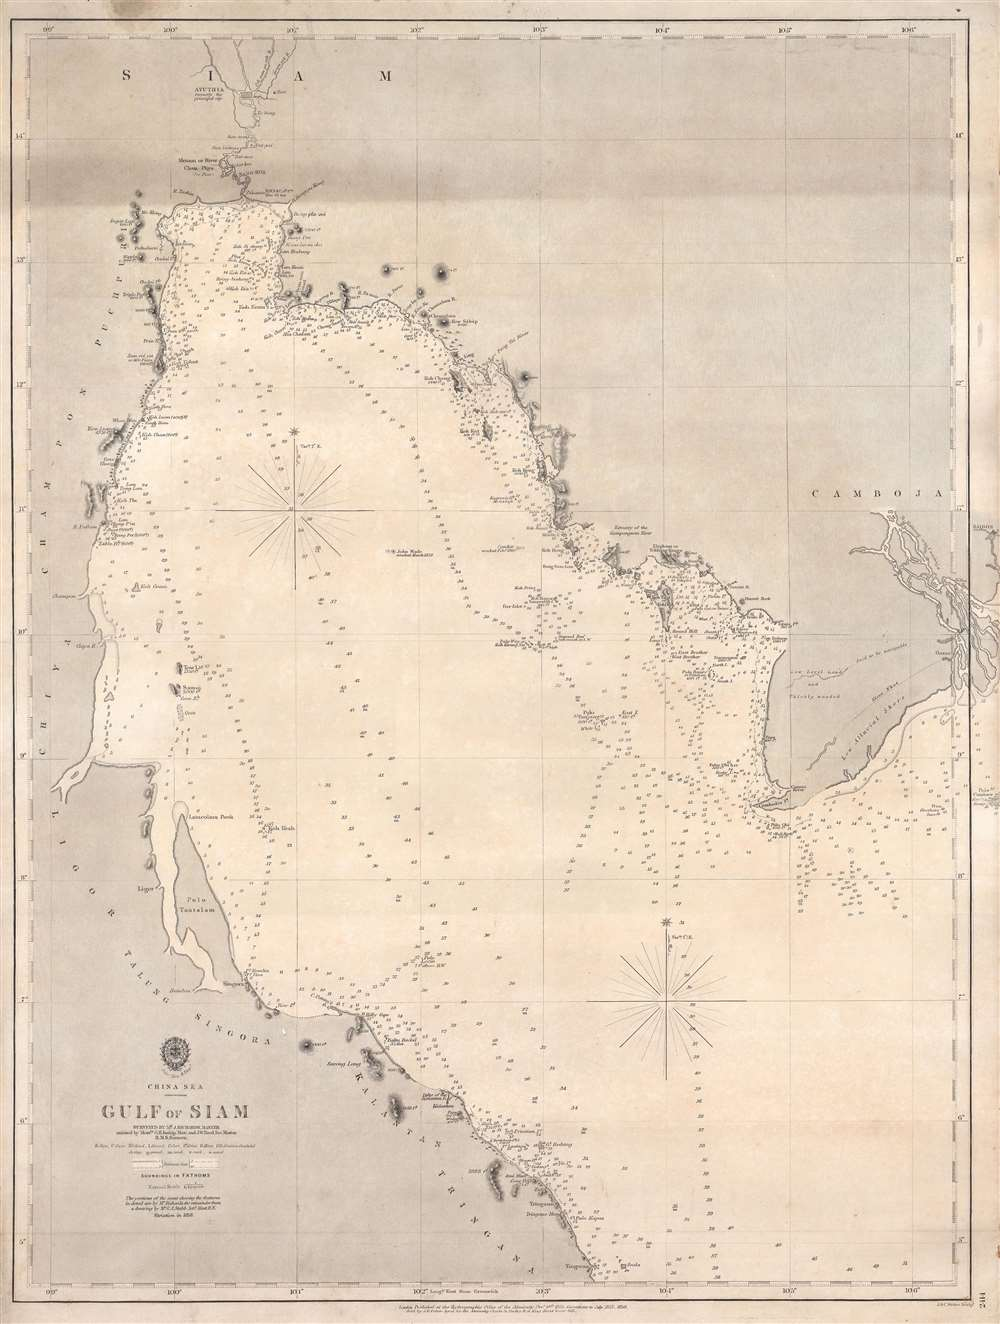 1858 Admiralty Nautical Chart or Maritime Map of the Gulf of Siam